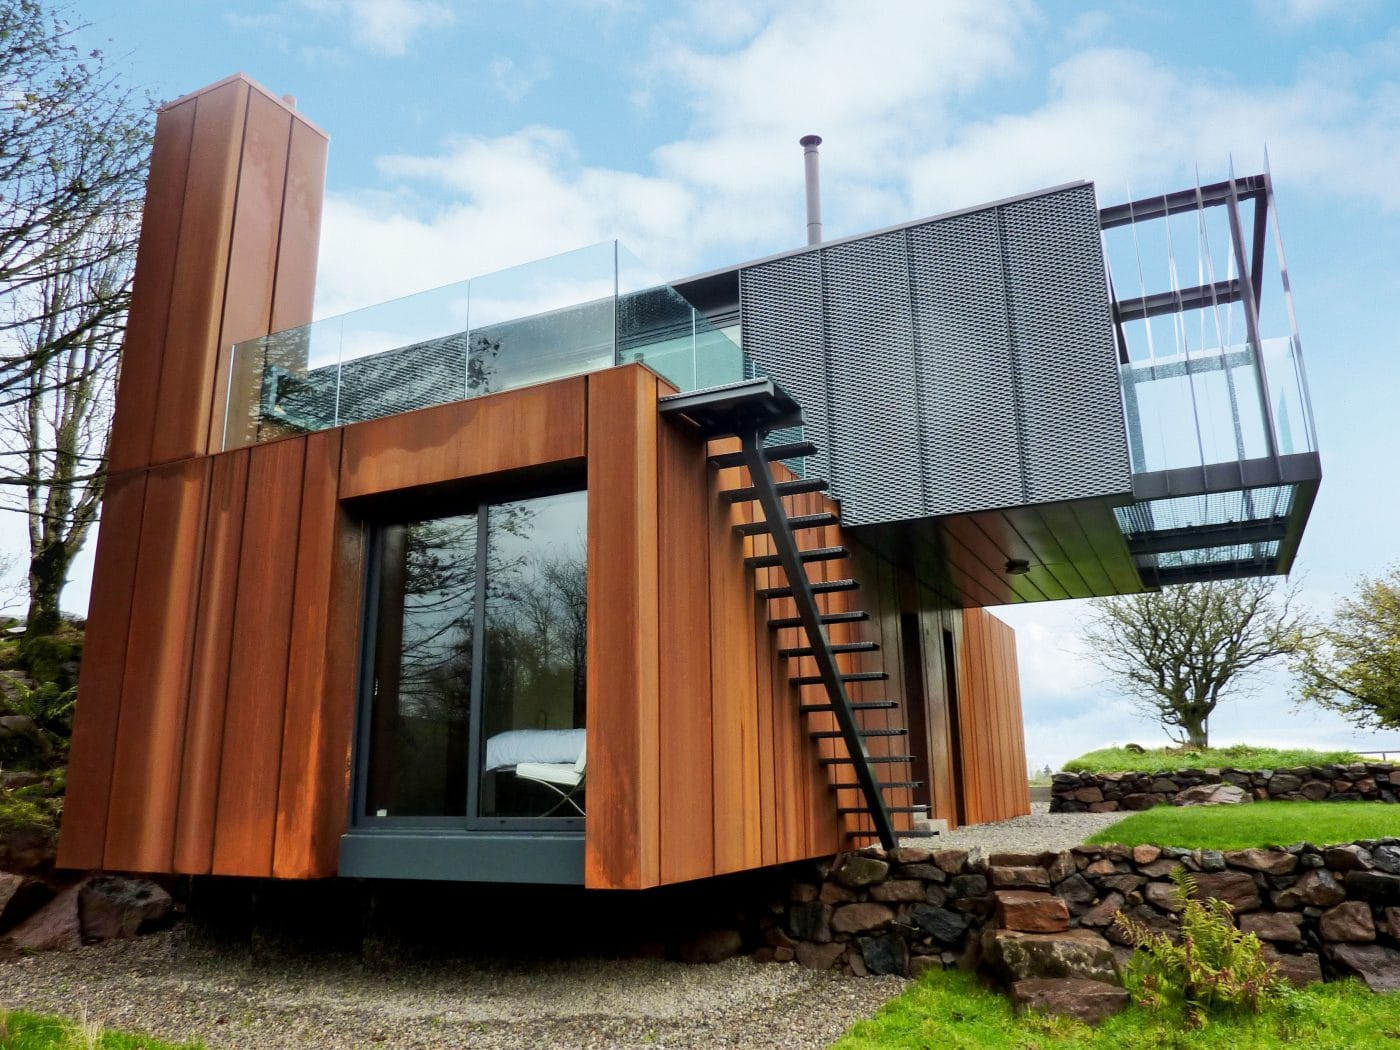 Grand designs shipping container home by patrick bradley for House structure design ideas